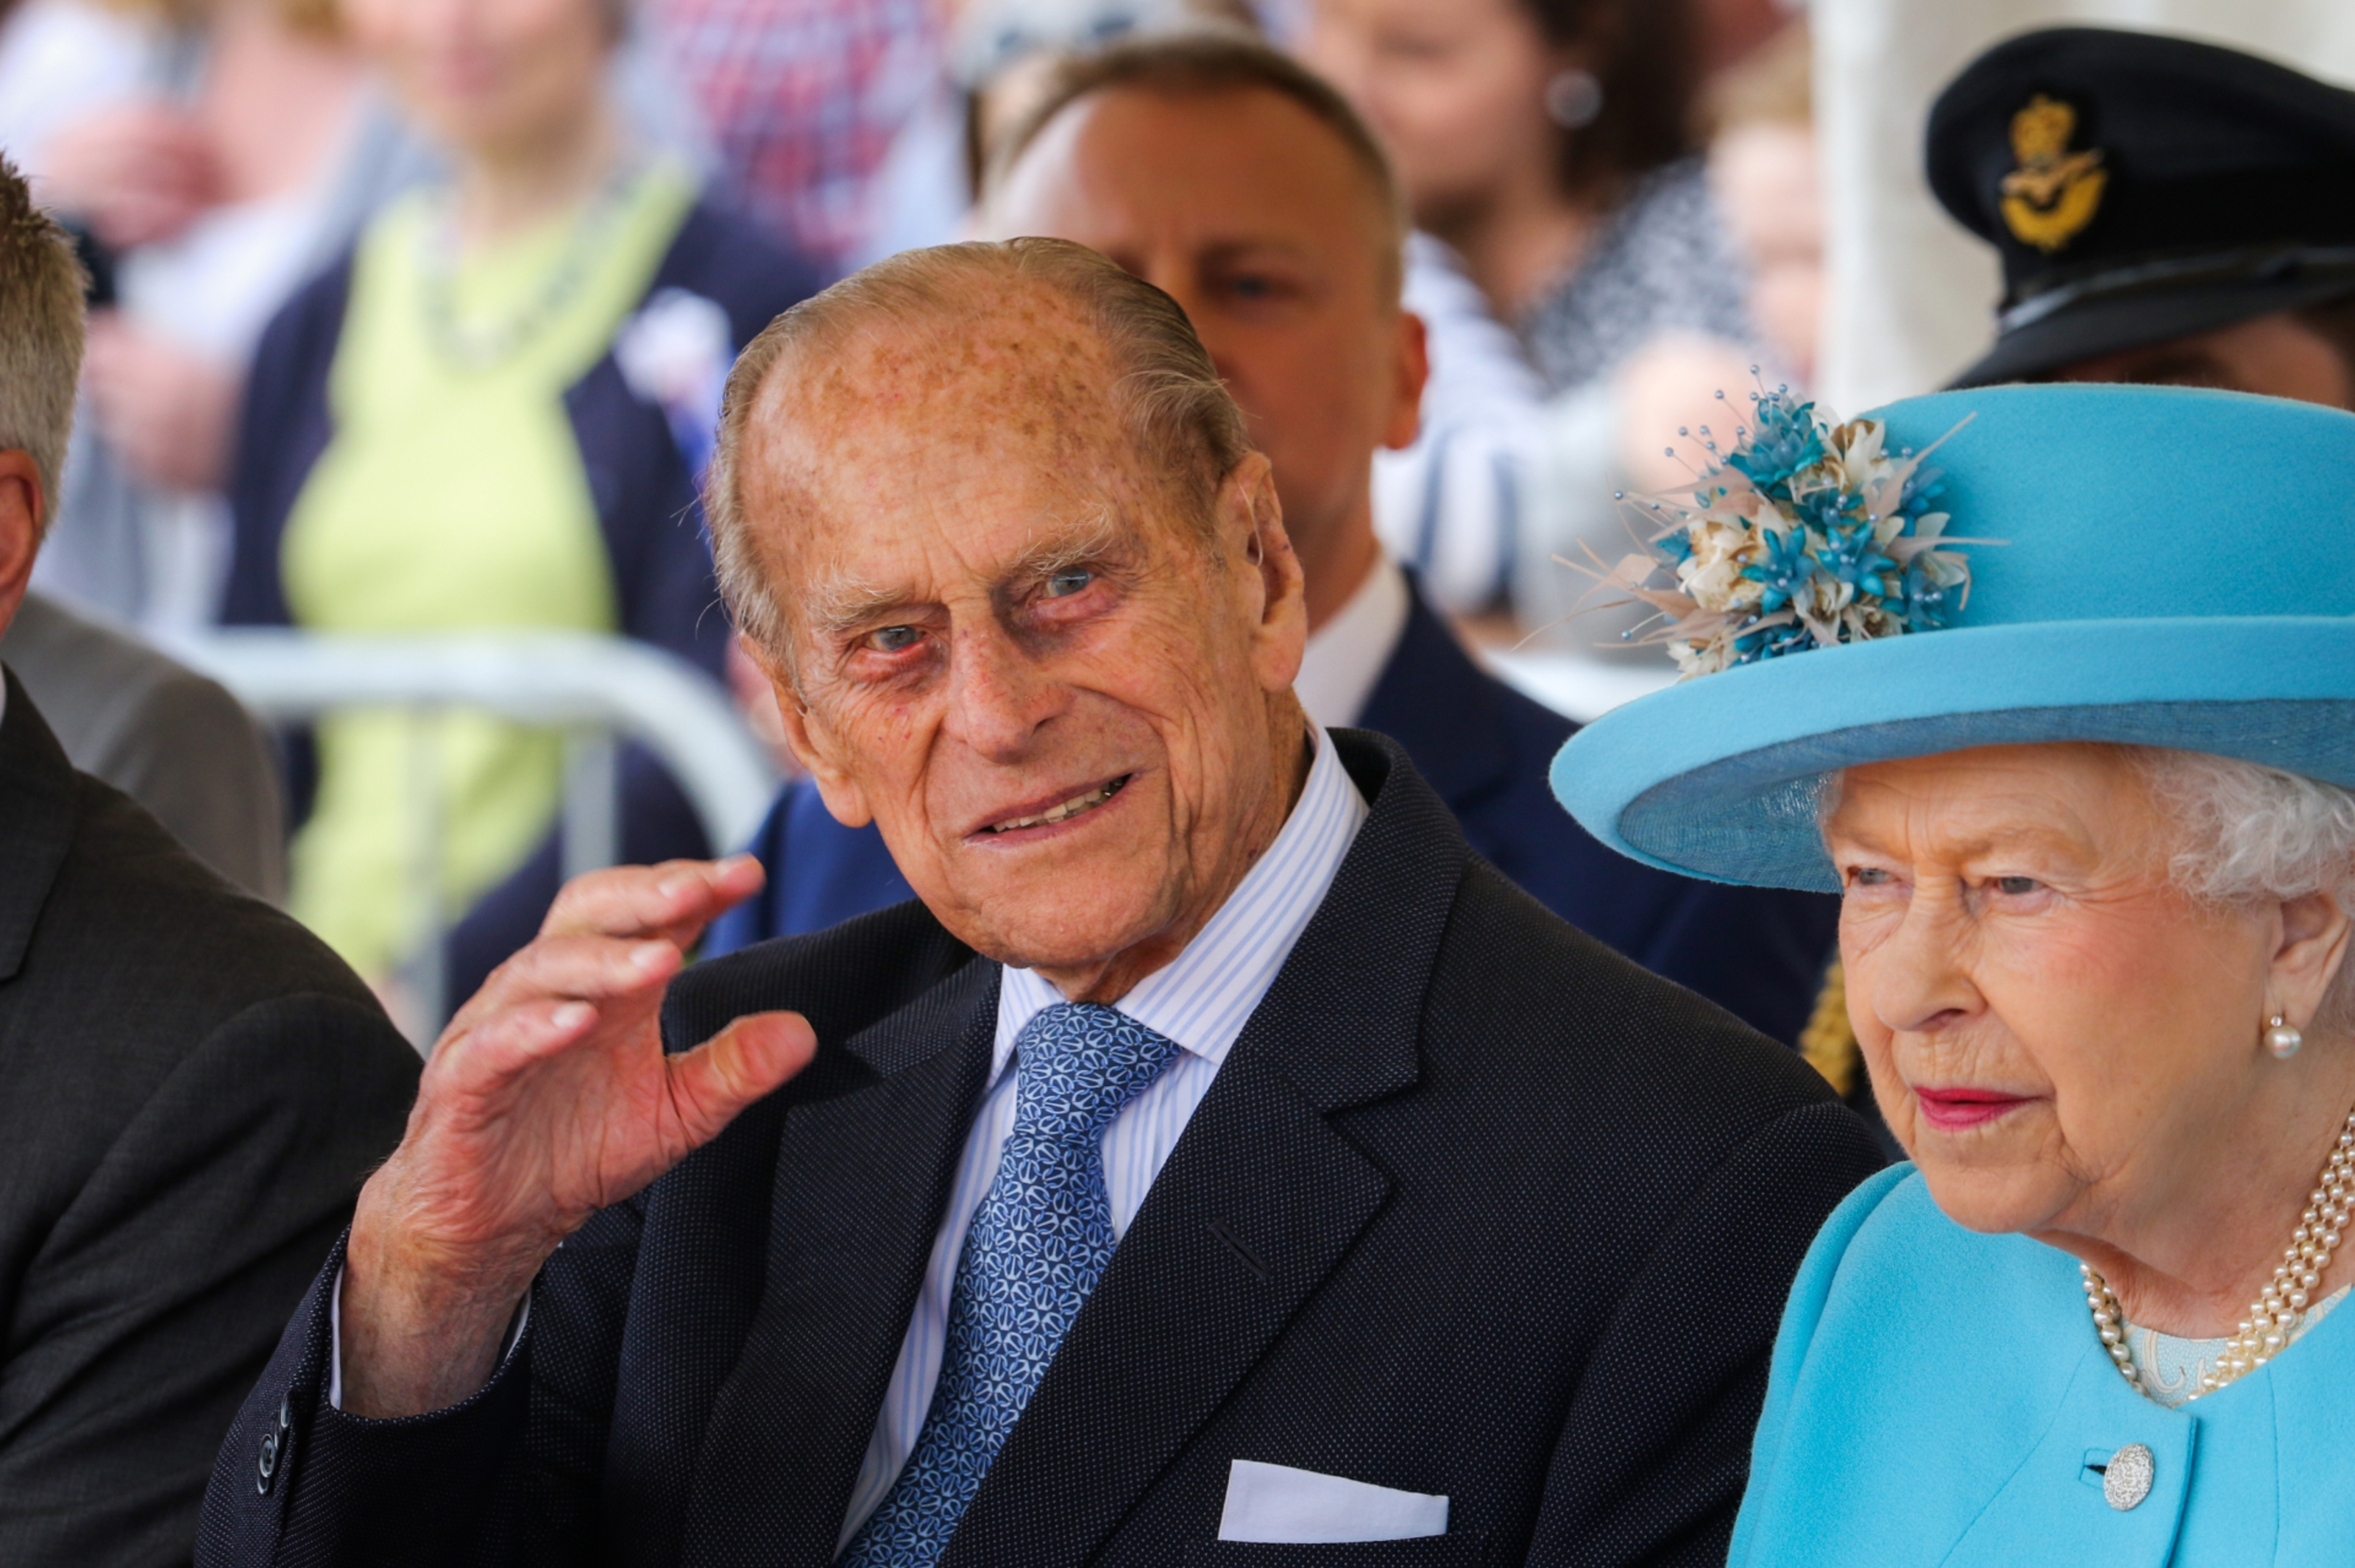 Prince Philip is standing aside from his royal duties.